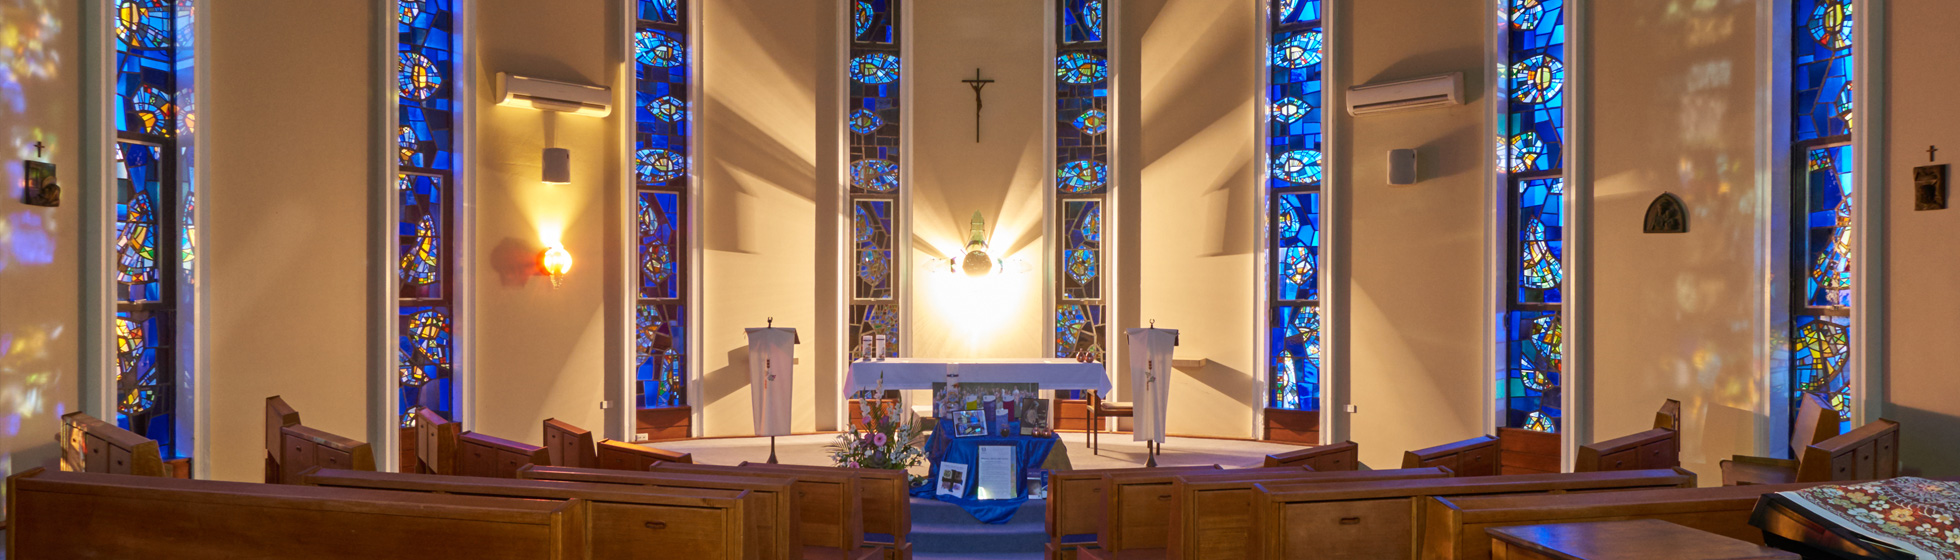 Catholic and multi-faith chapel